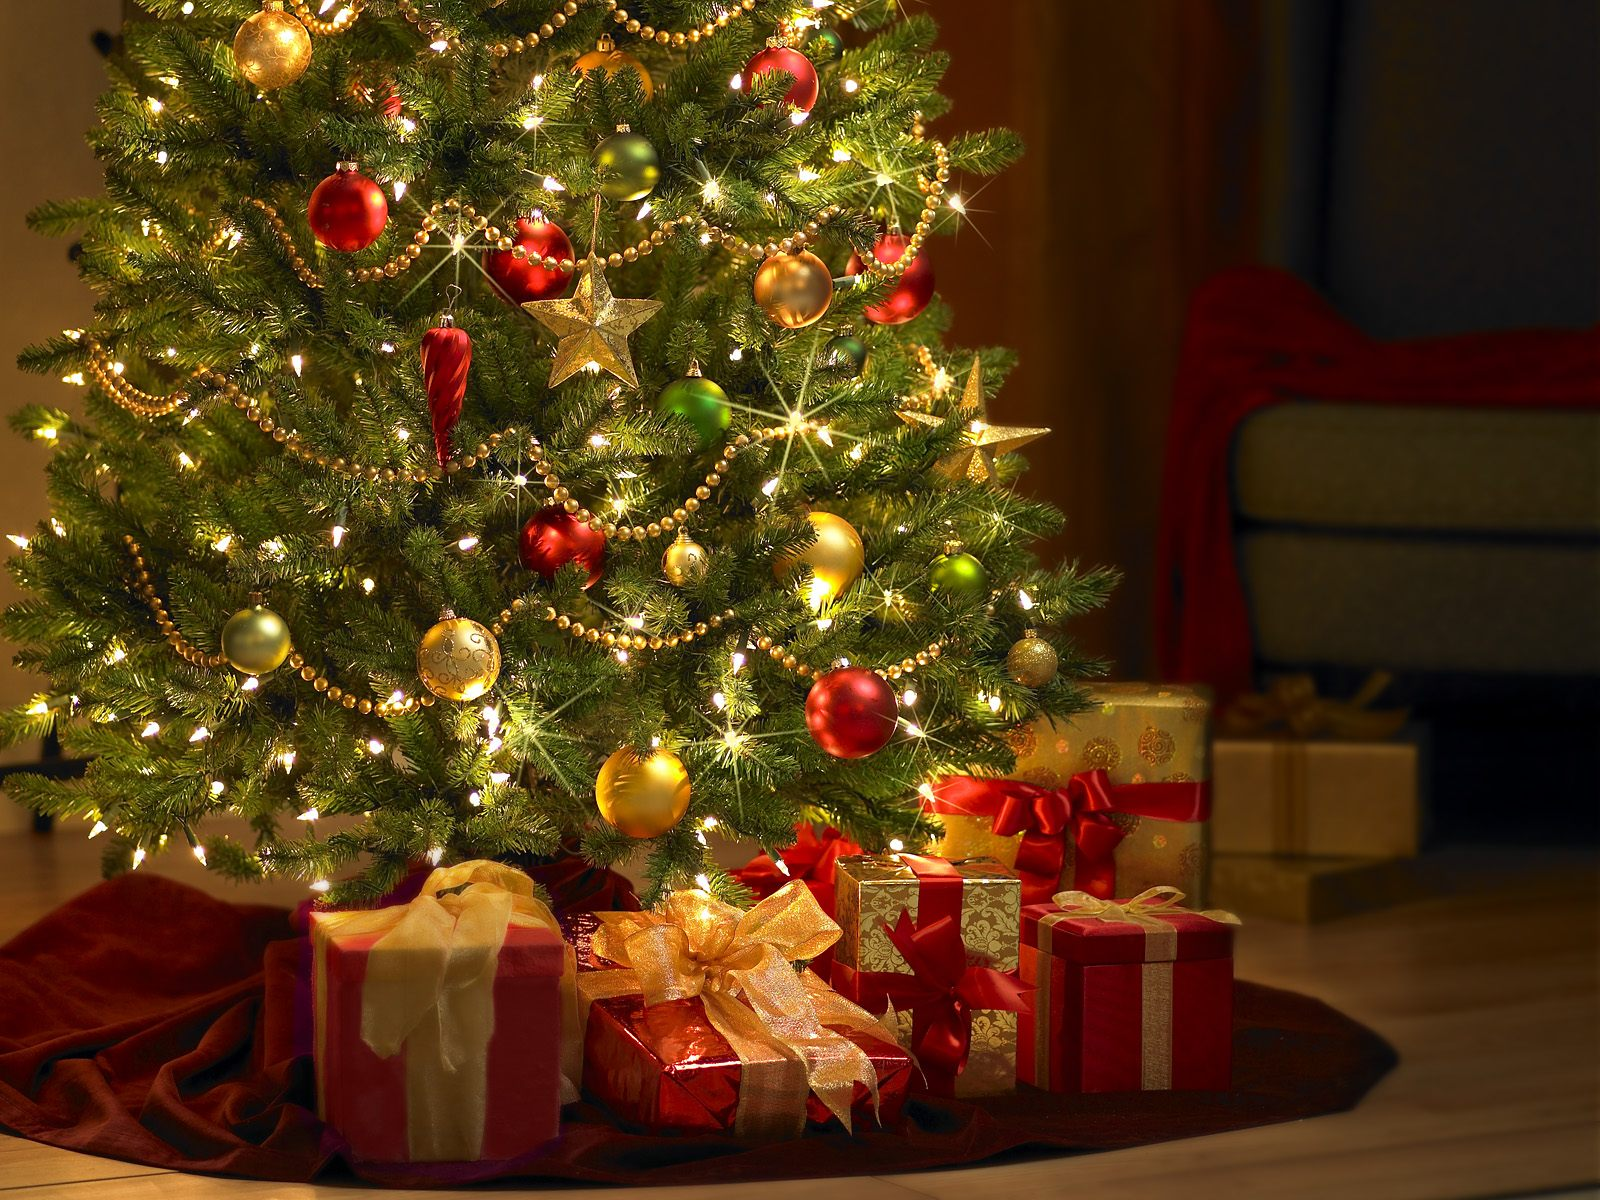 Animated Christmas Wallpaper   wwwwallpapers in hdcom 1600x1200